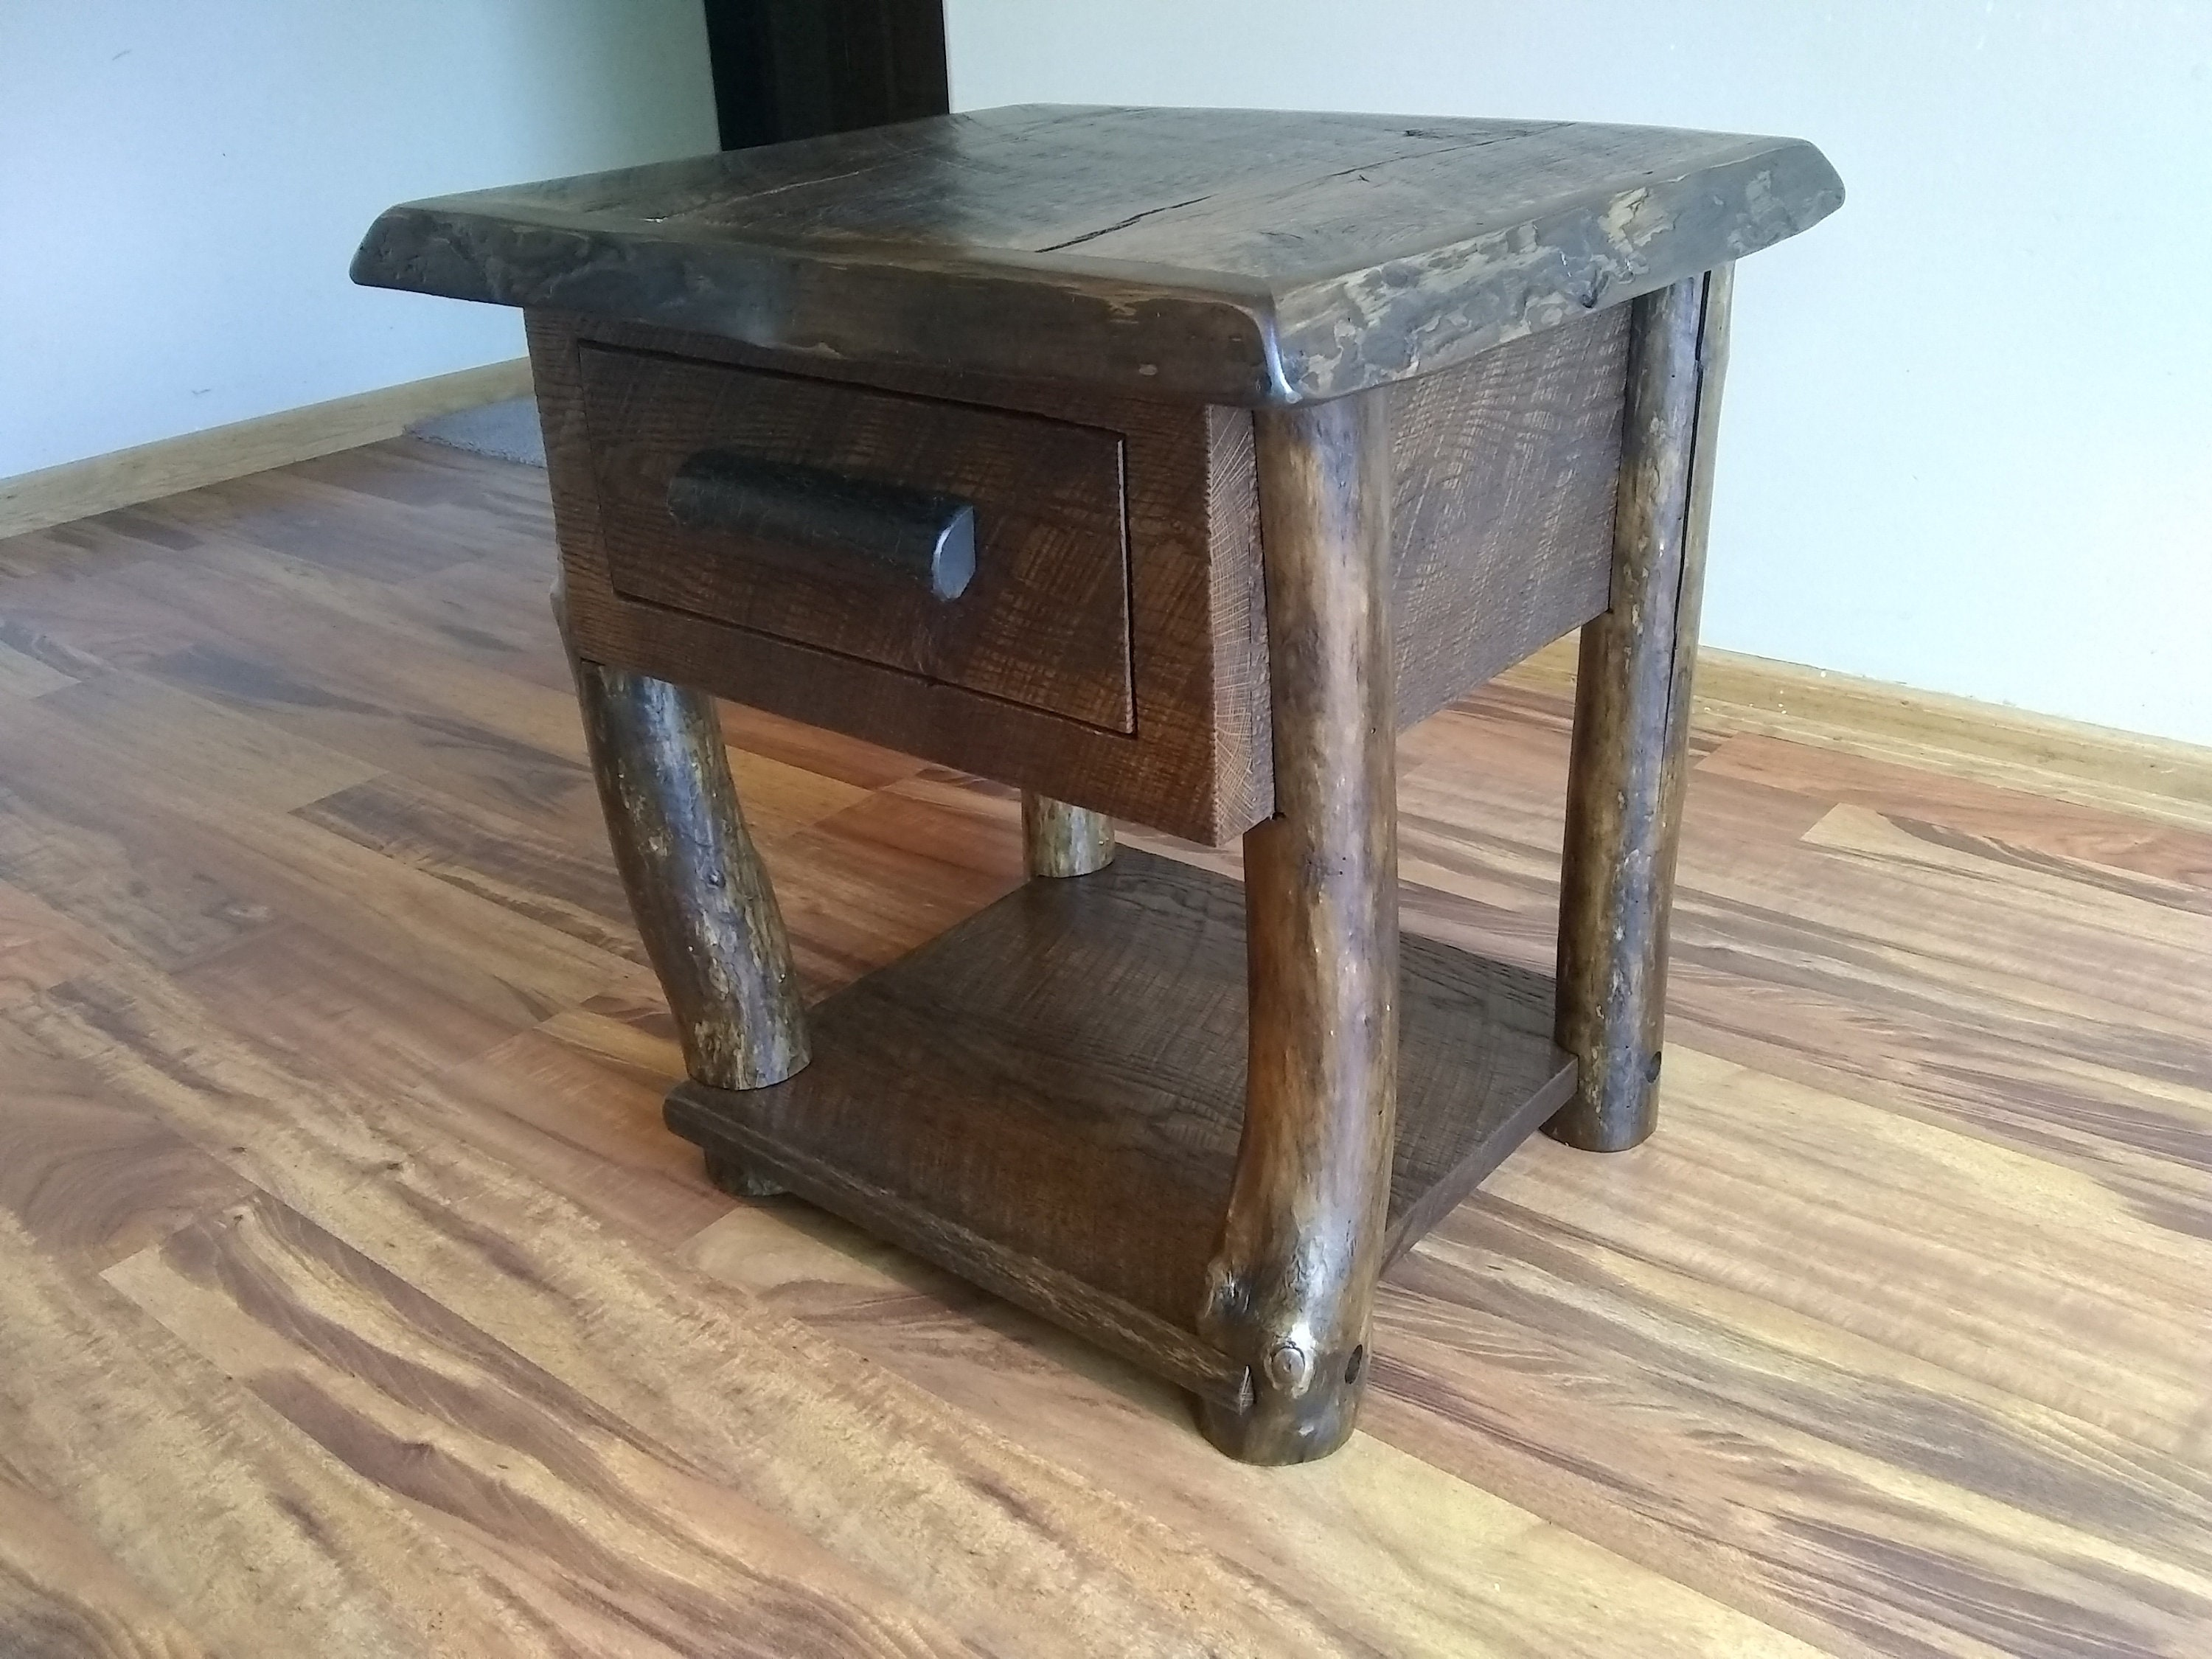 Live Edge End Table Rustic Night Stand End Table Wood Table Small Table End Table With Drawer Night Stand With Drawer Circle Sawn Wood